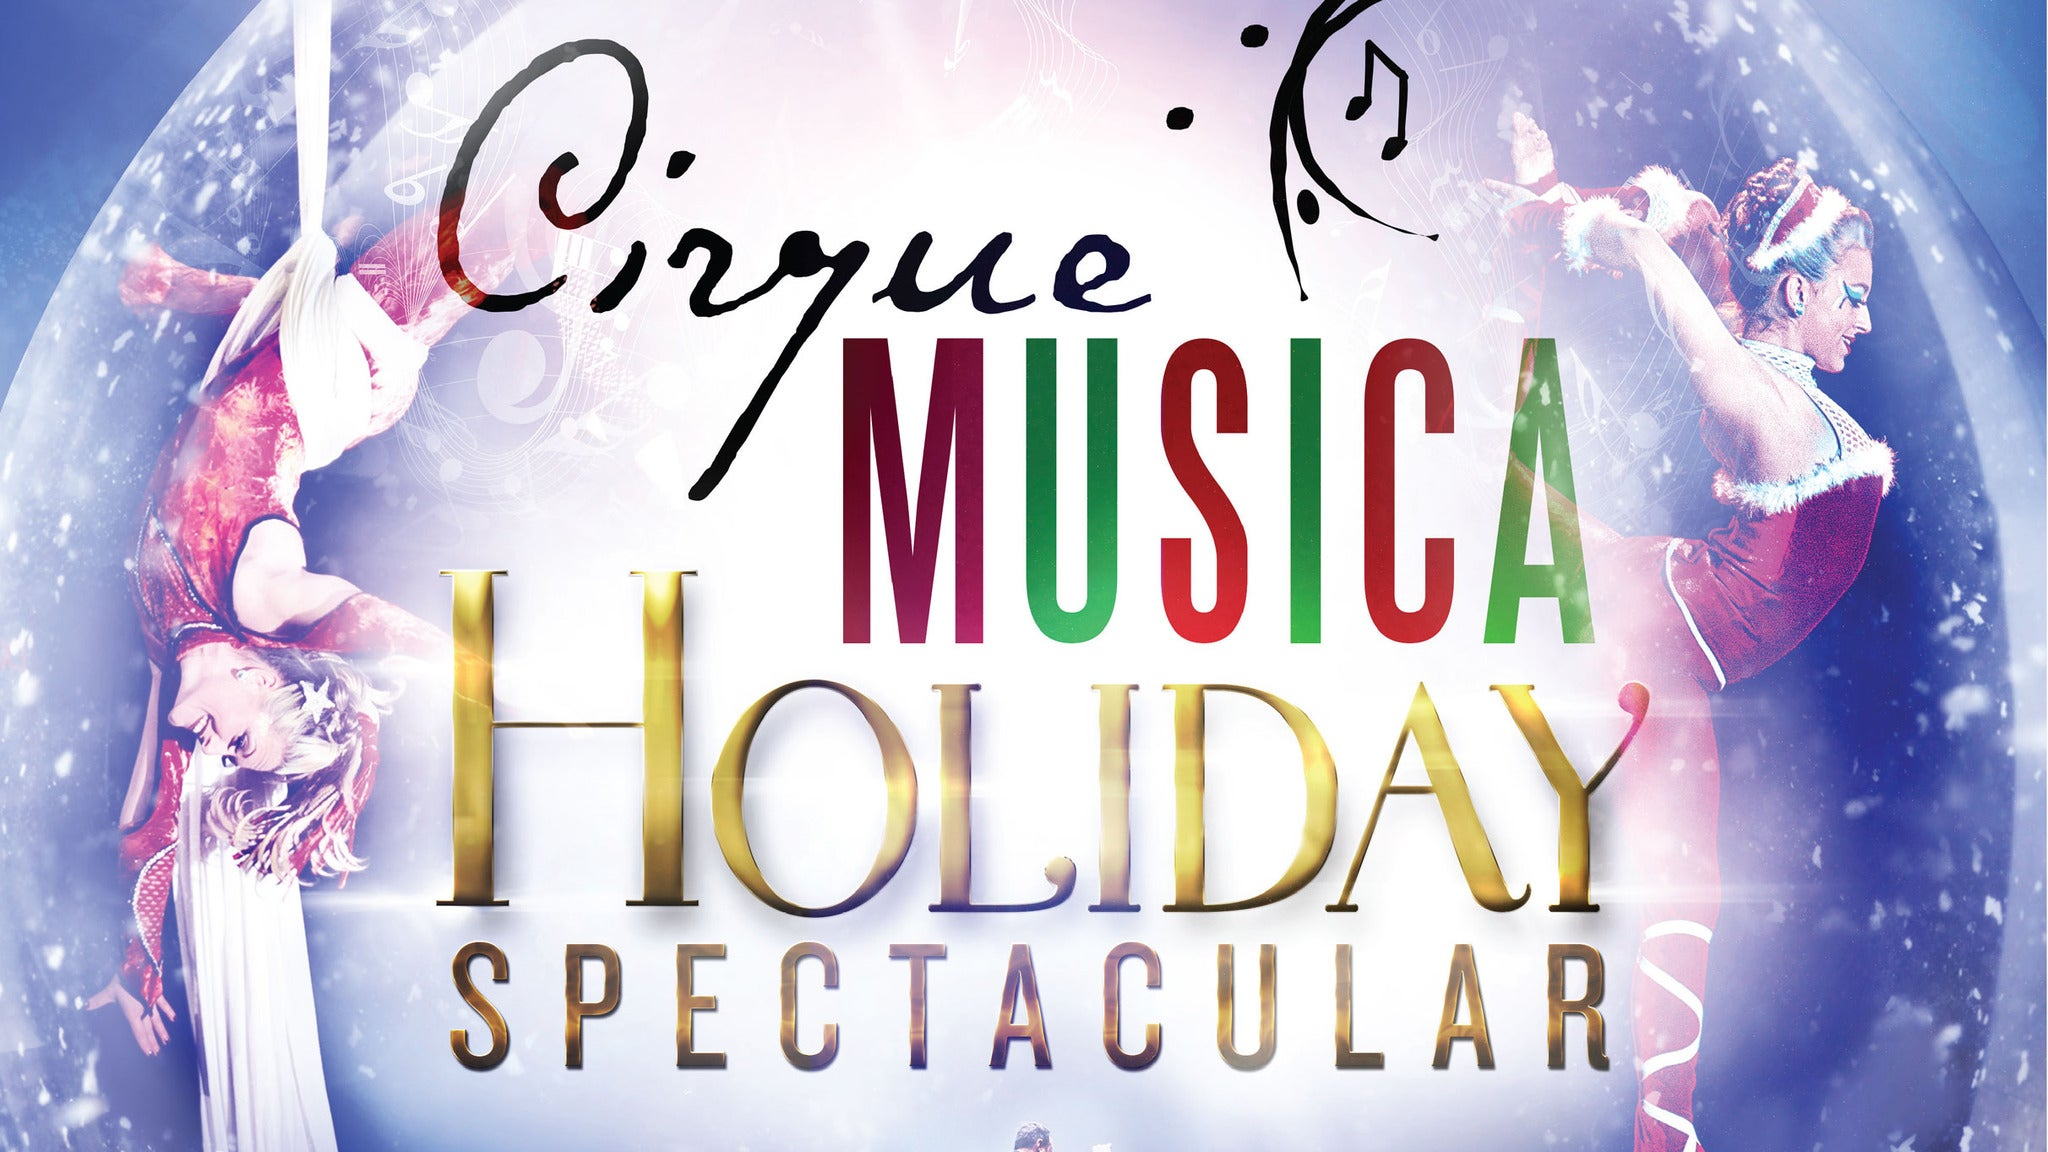 Cirque Musica Holiday Spectacular at Rosemont Theatre